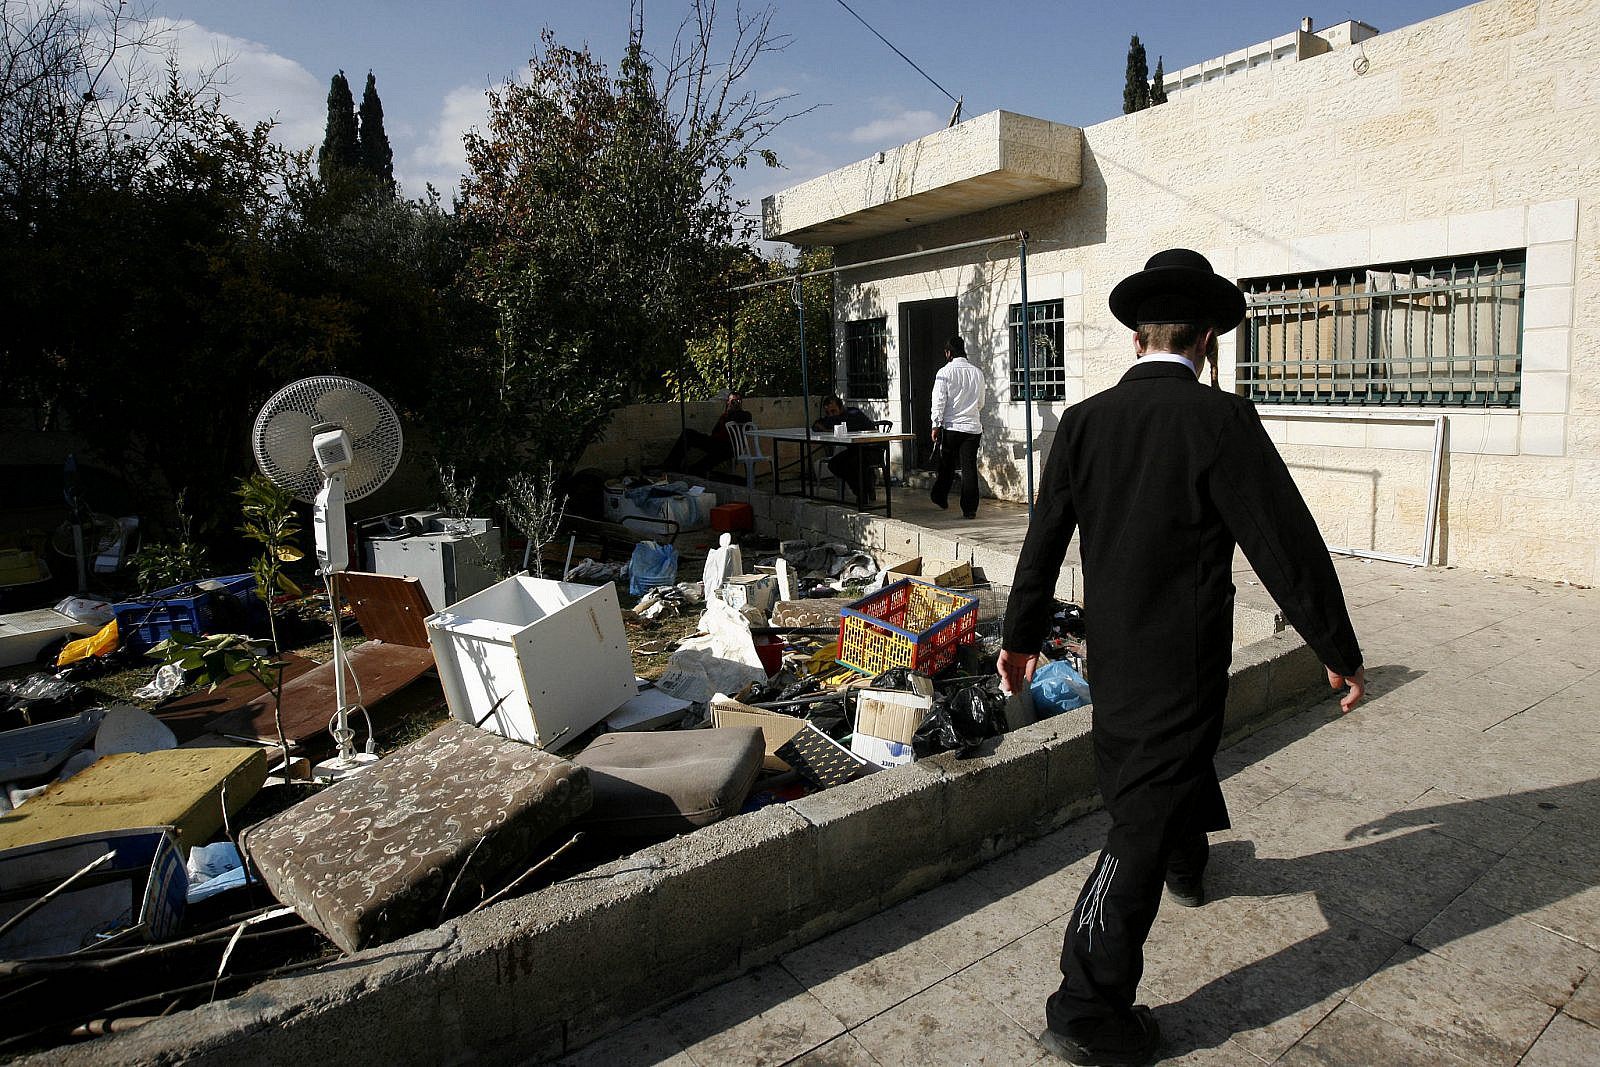 An ultra-Orthodox Jew walks past belongings thrown out from a Palestinian house in the neighborhood of Sheikh Jarrah in East Jerusalem, December 3, 2009. (Miriam Alster/Flash90)